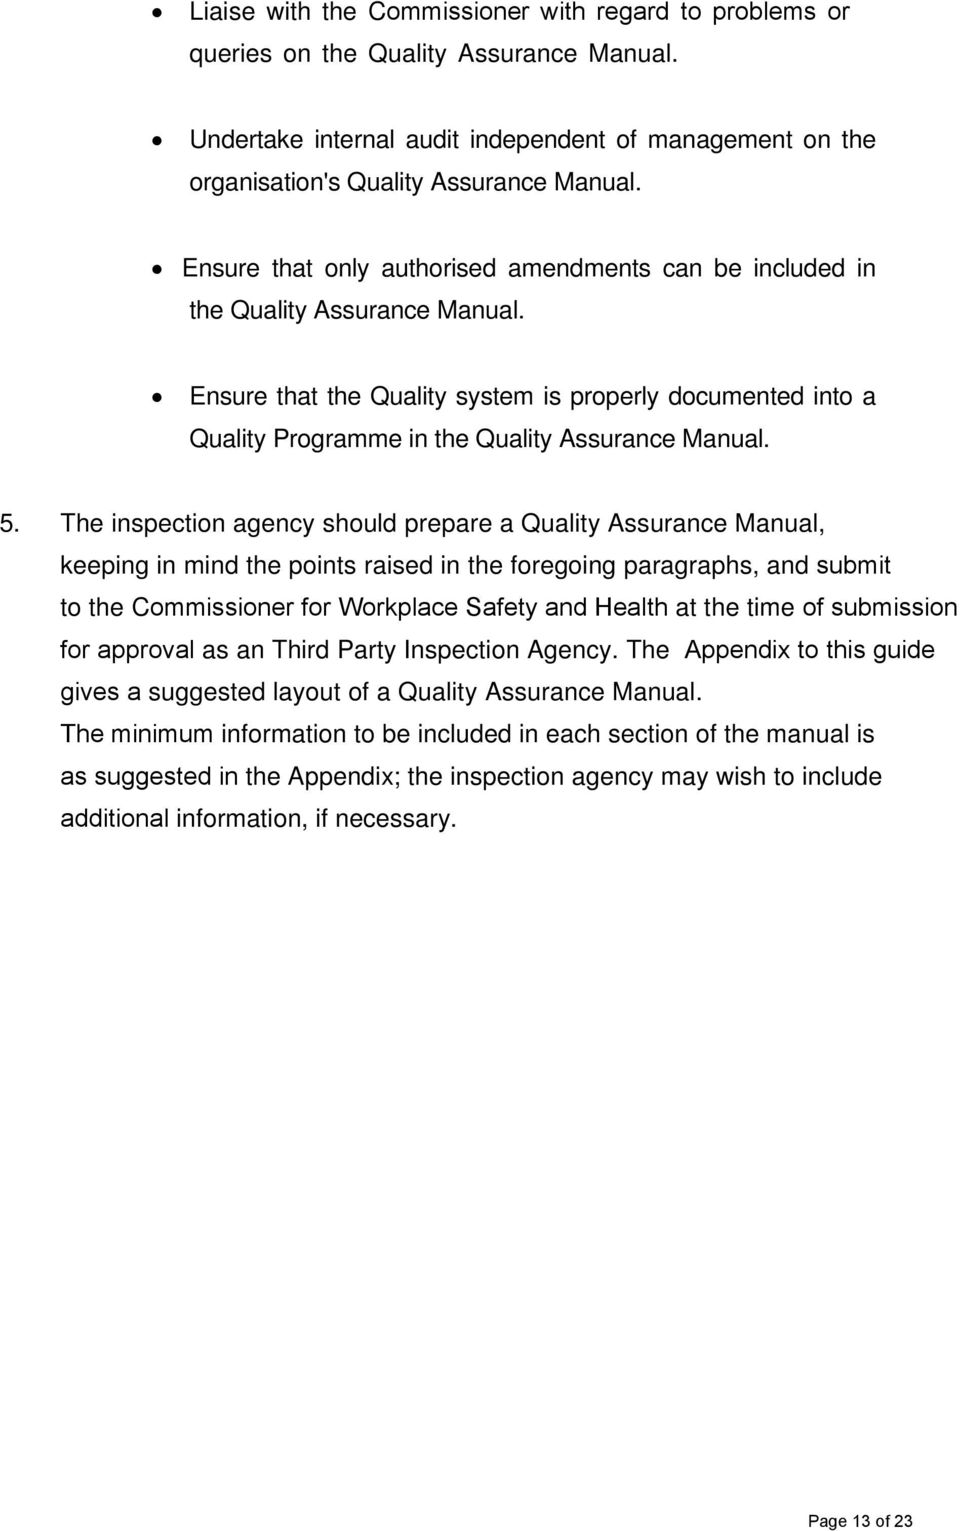 5. The inspection agency should prepare a Quality Assurance Manual, keeping in mind the points raised in the foregoing paragraphs, and submit to the Commissioner for Workplace Safety and Health at